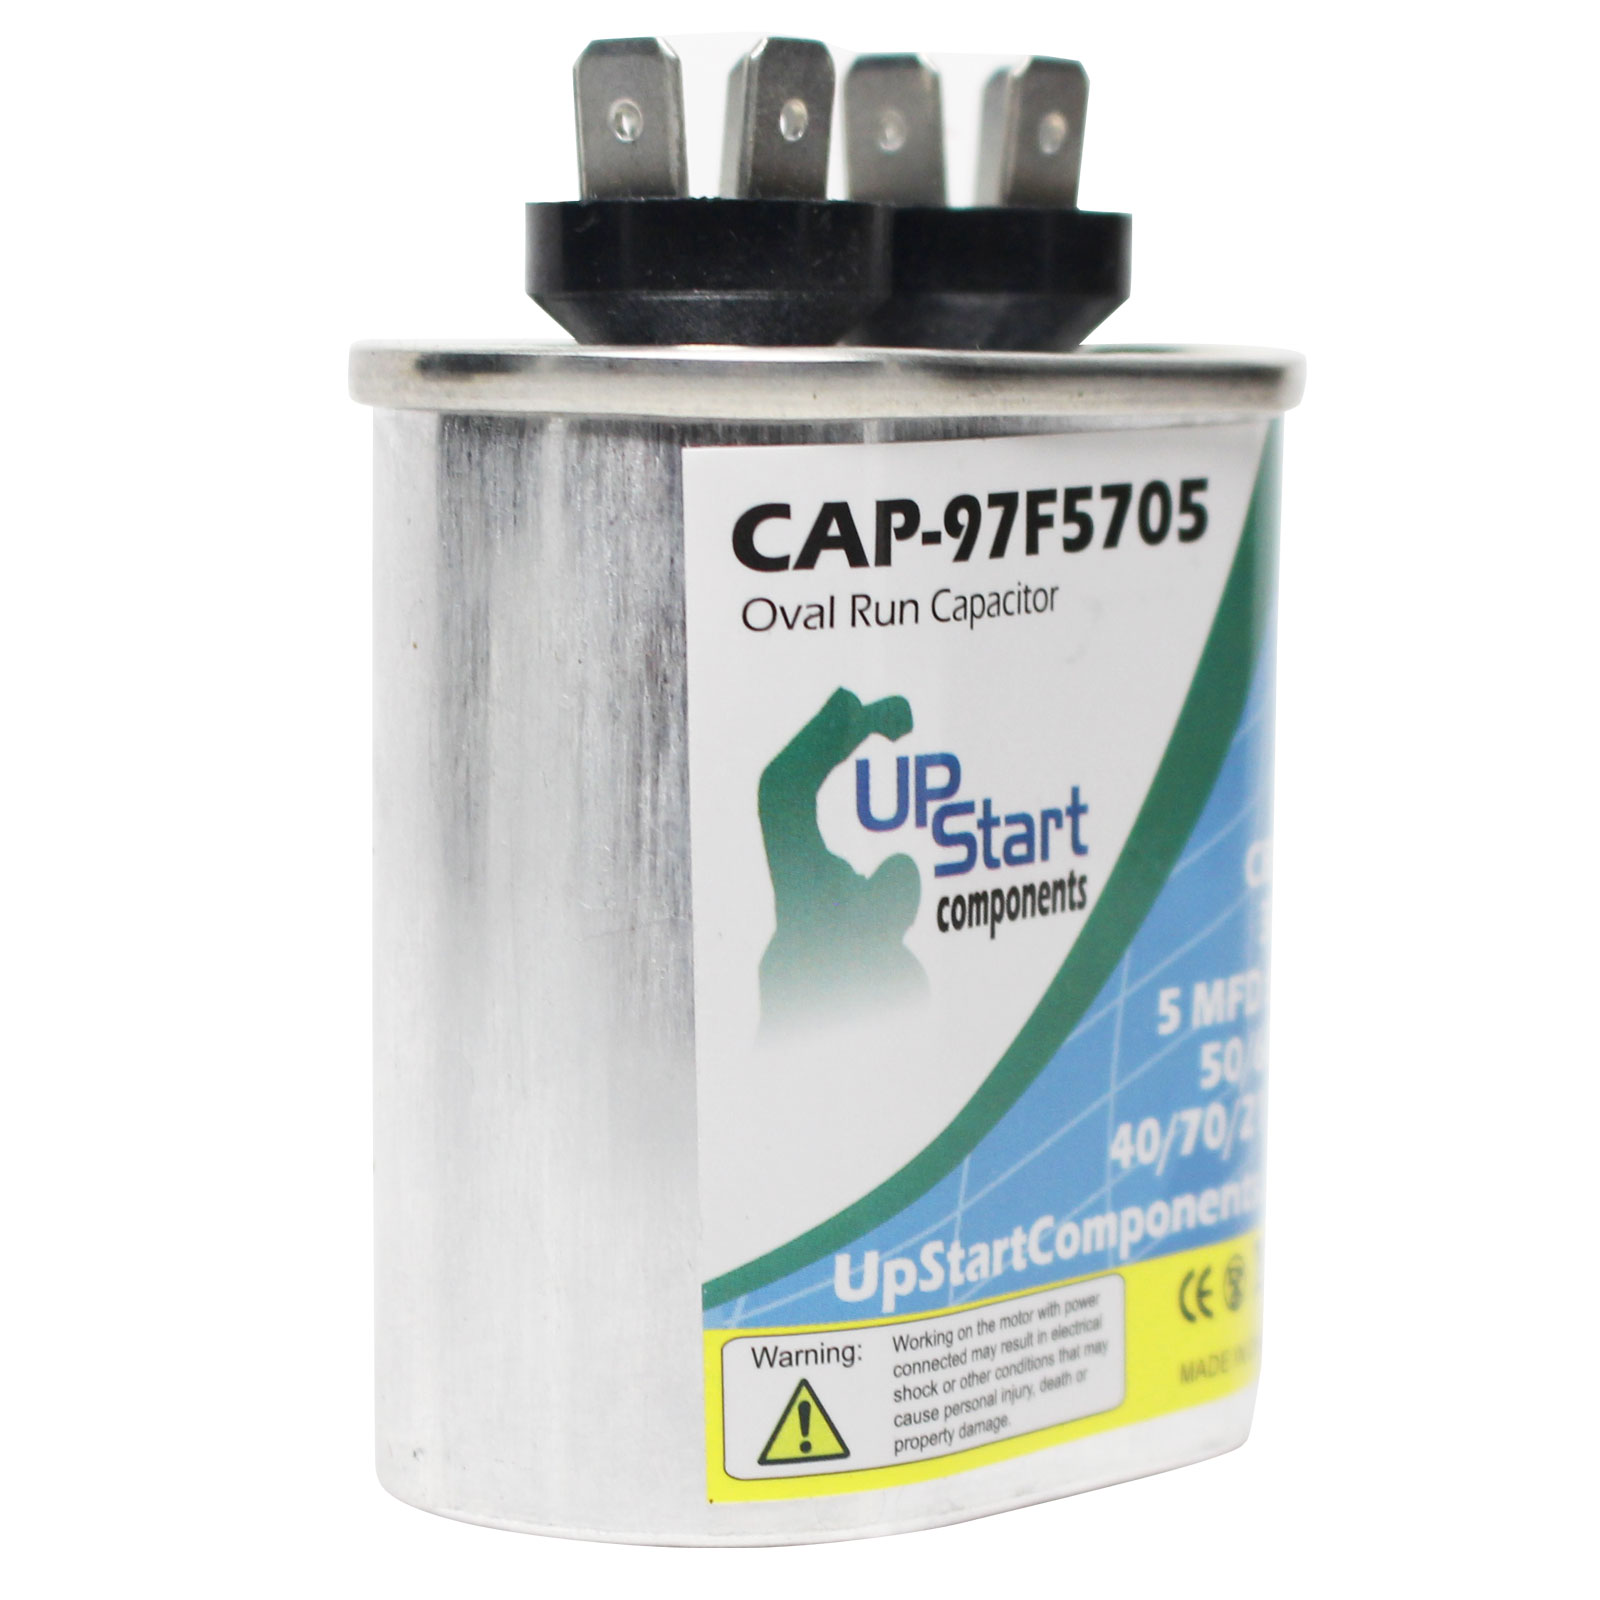 5-Pack 5 MFD 370 Volt Oval Motor Run Capacitor Replacement for GE 97F5705 CAP-97F5705 UpStart Components Brand